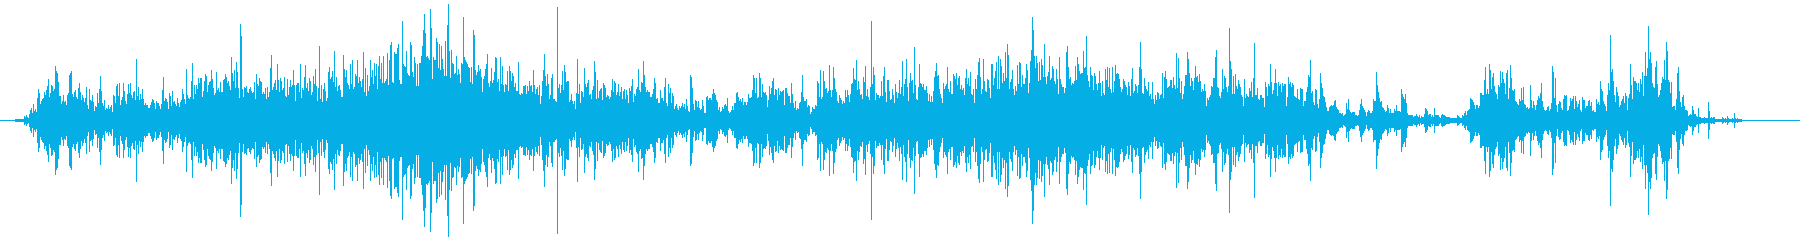 [Environmental sound] 24 Strong water sound's reproduced waveform